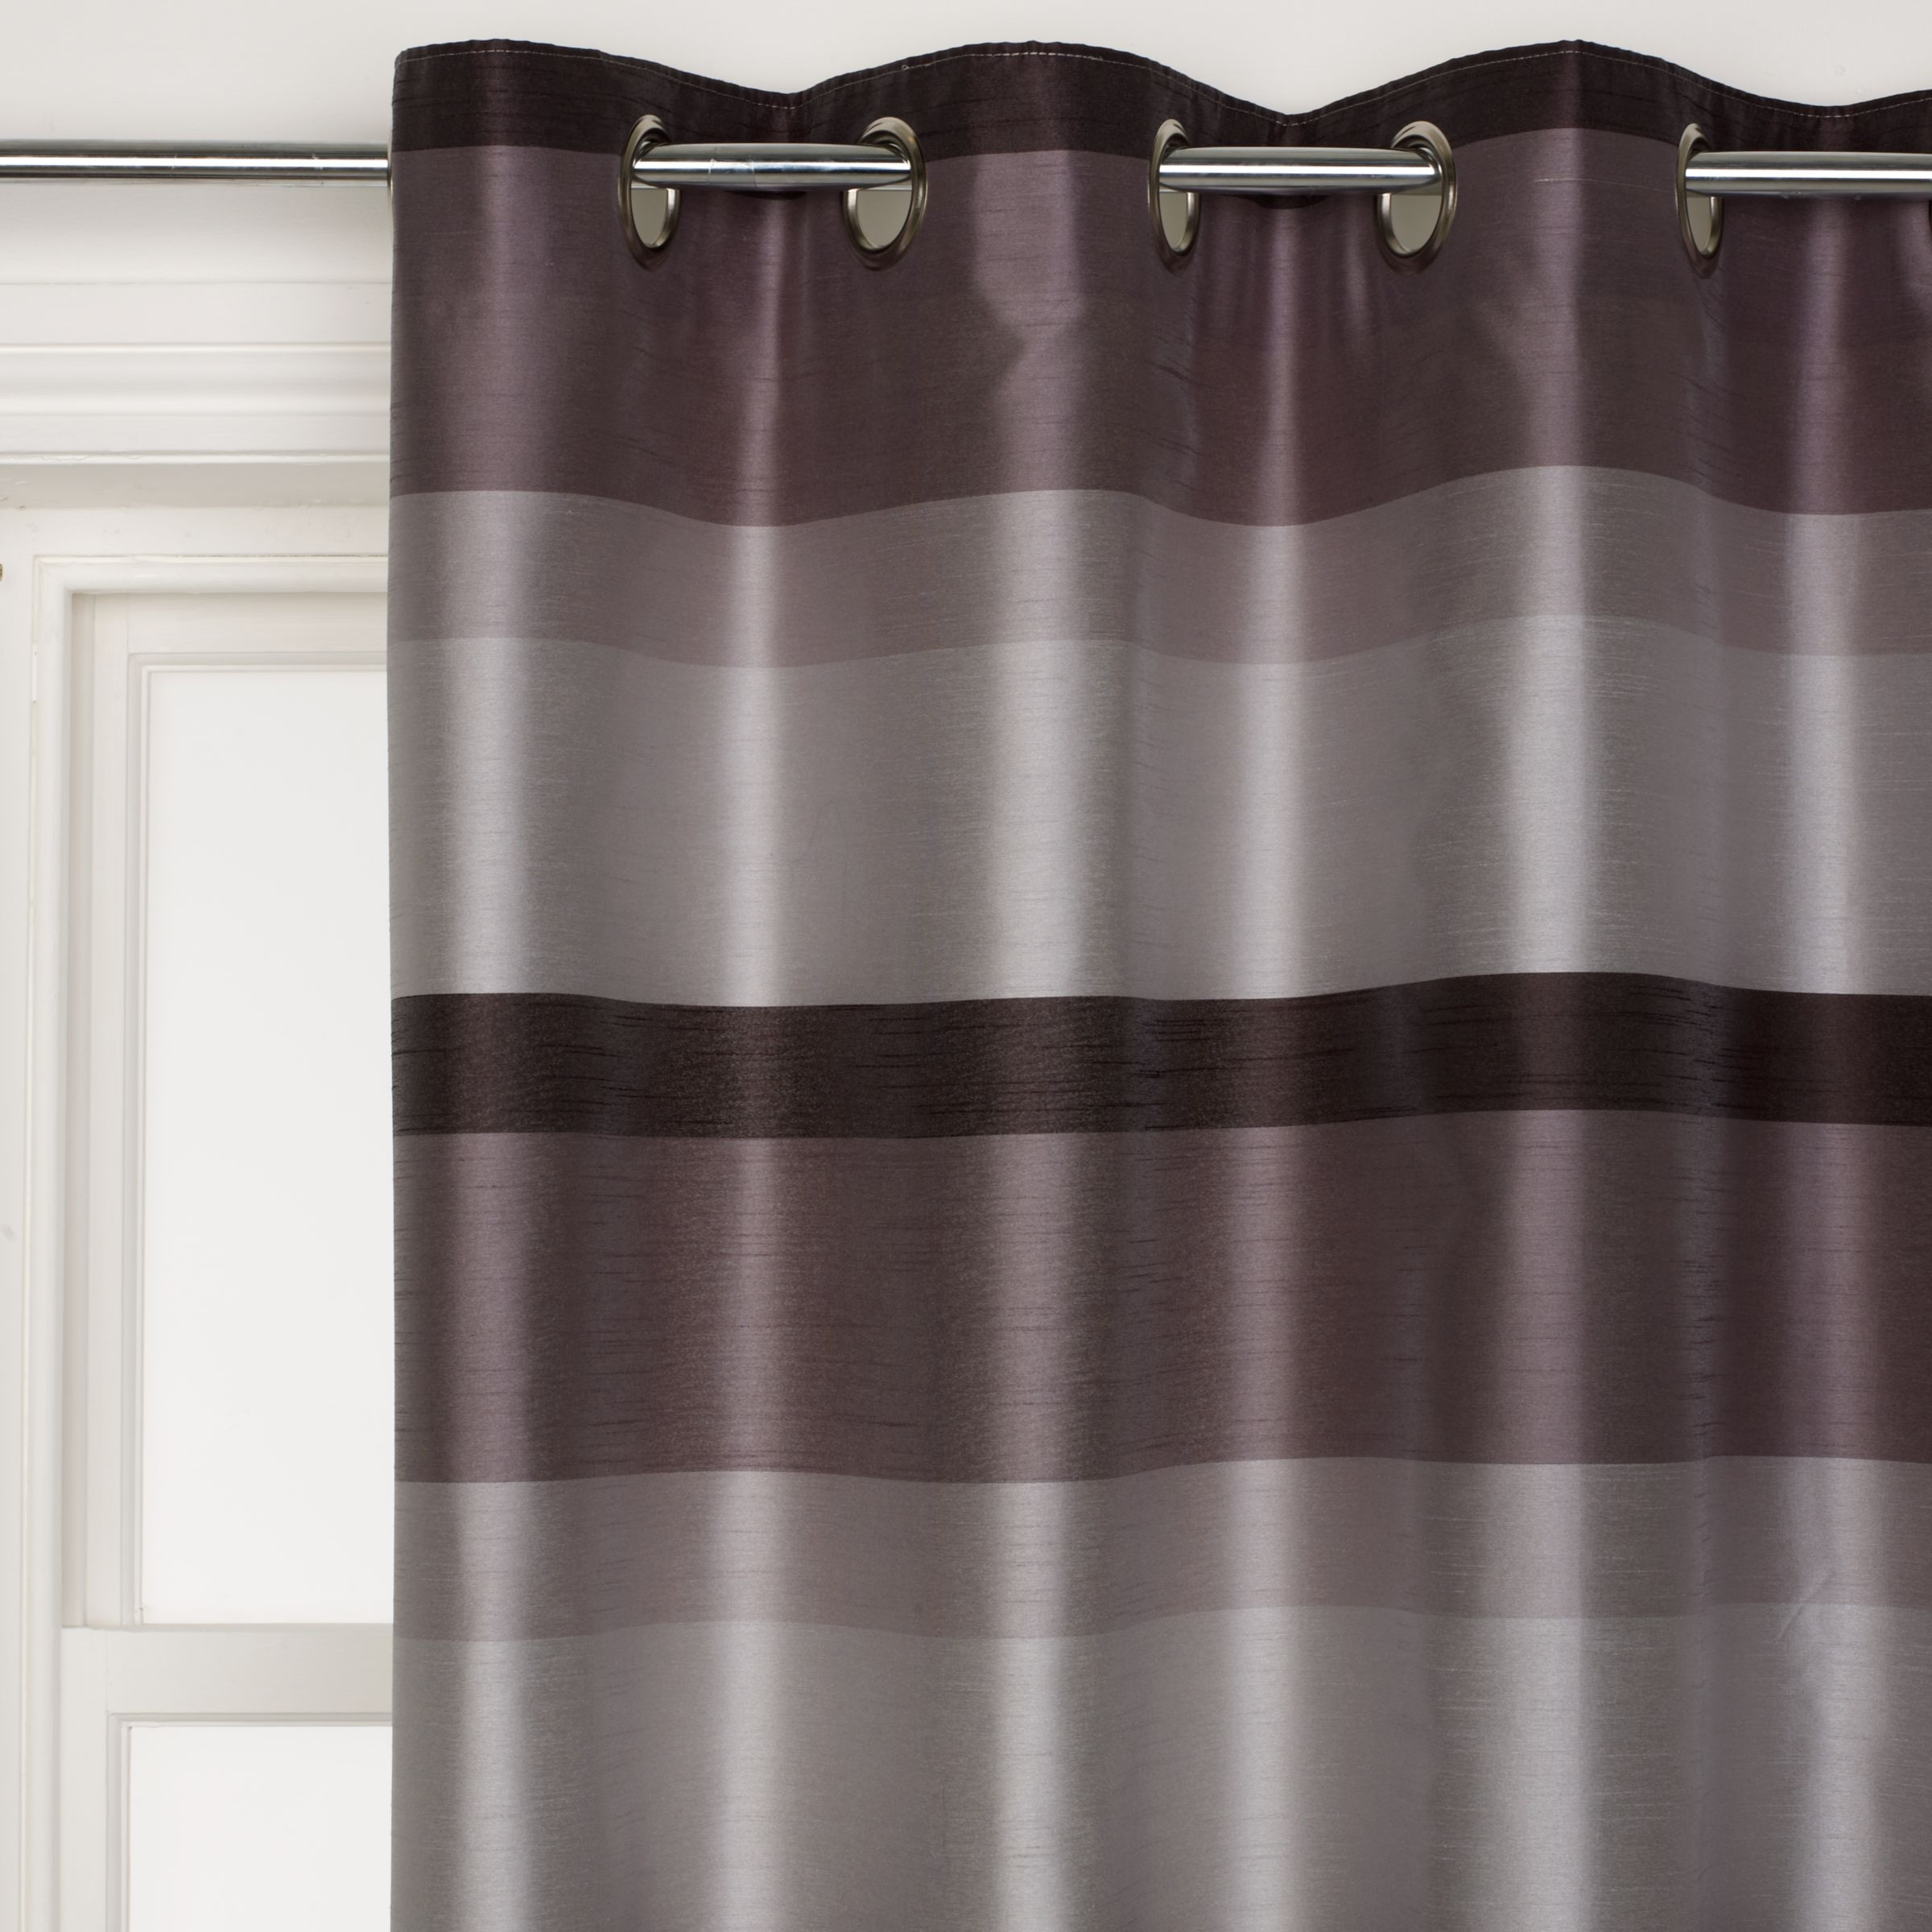 Space Curtains And Blinds